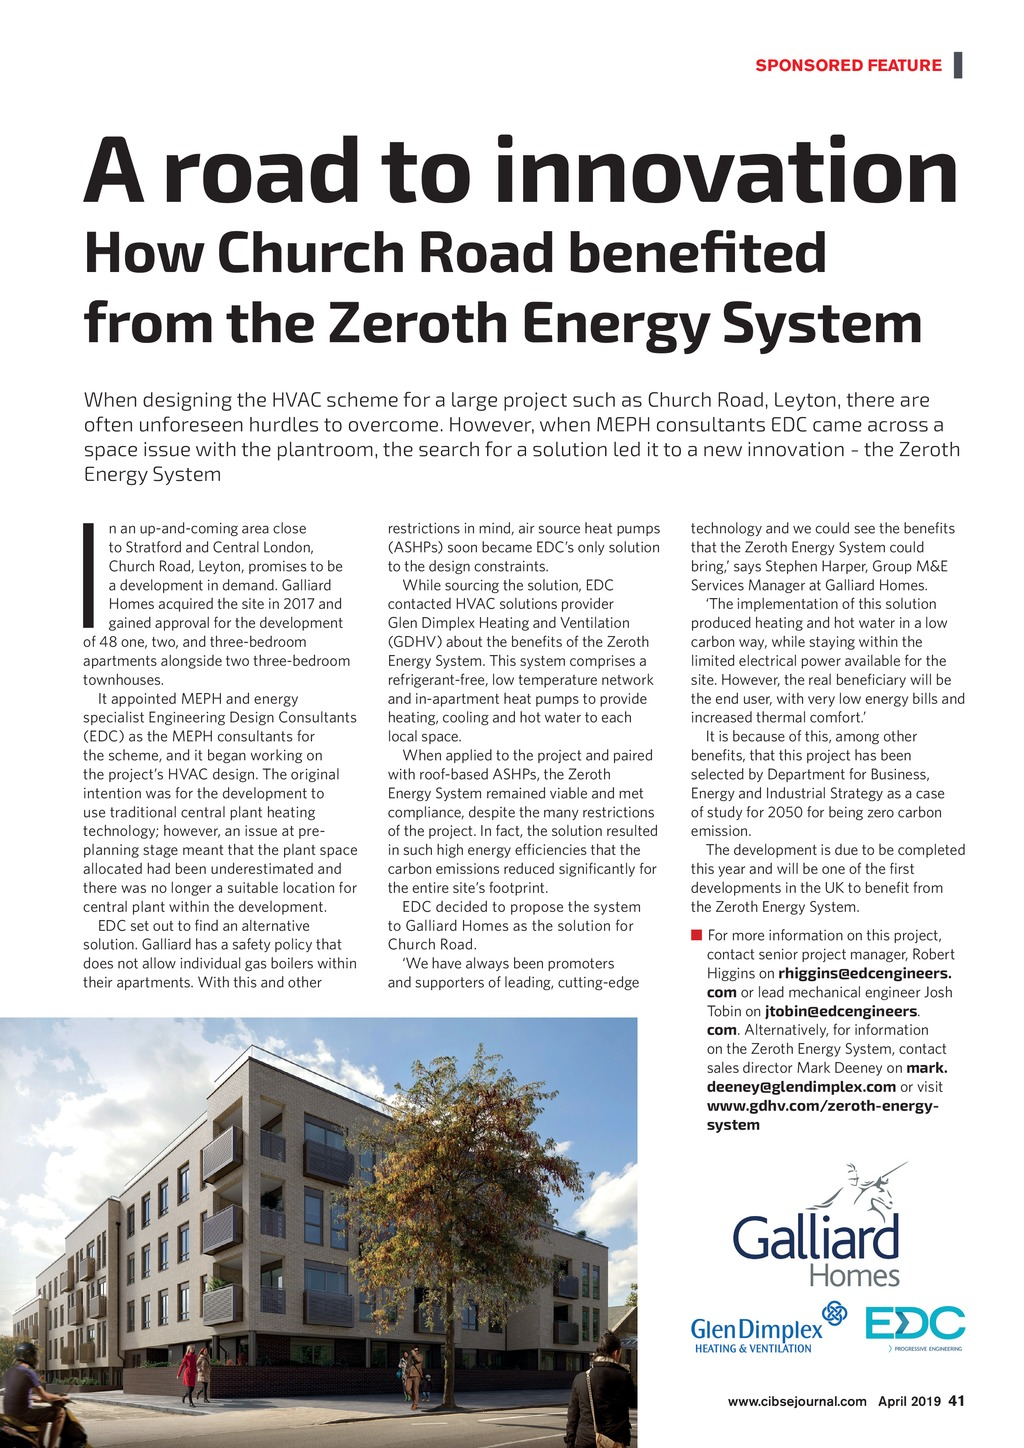 CIBSE Journal April 2019